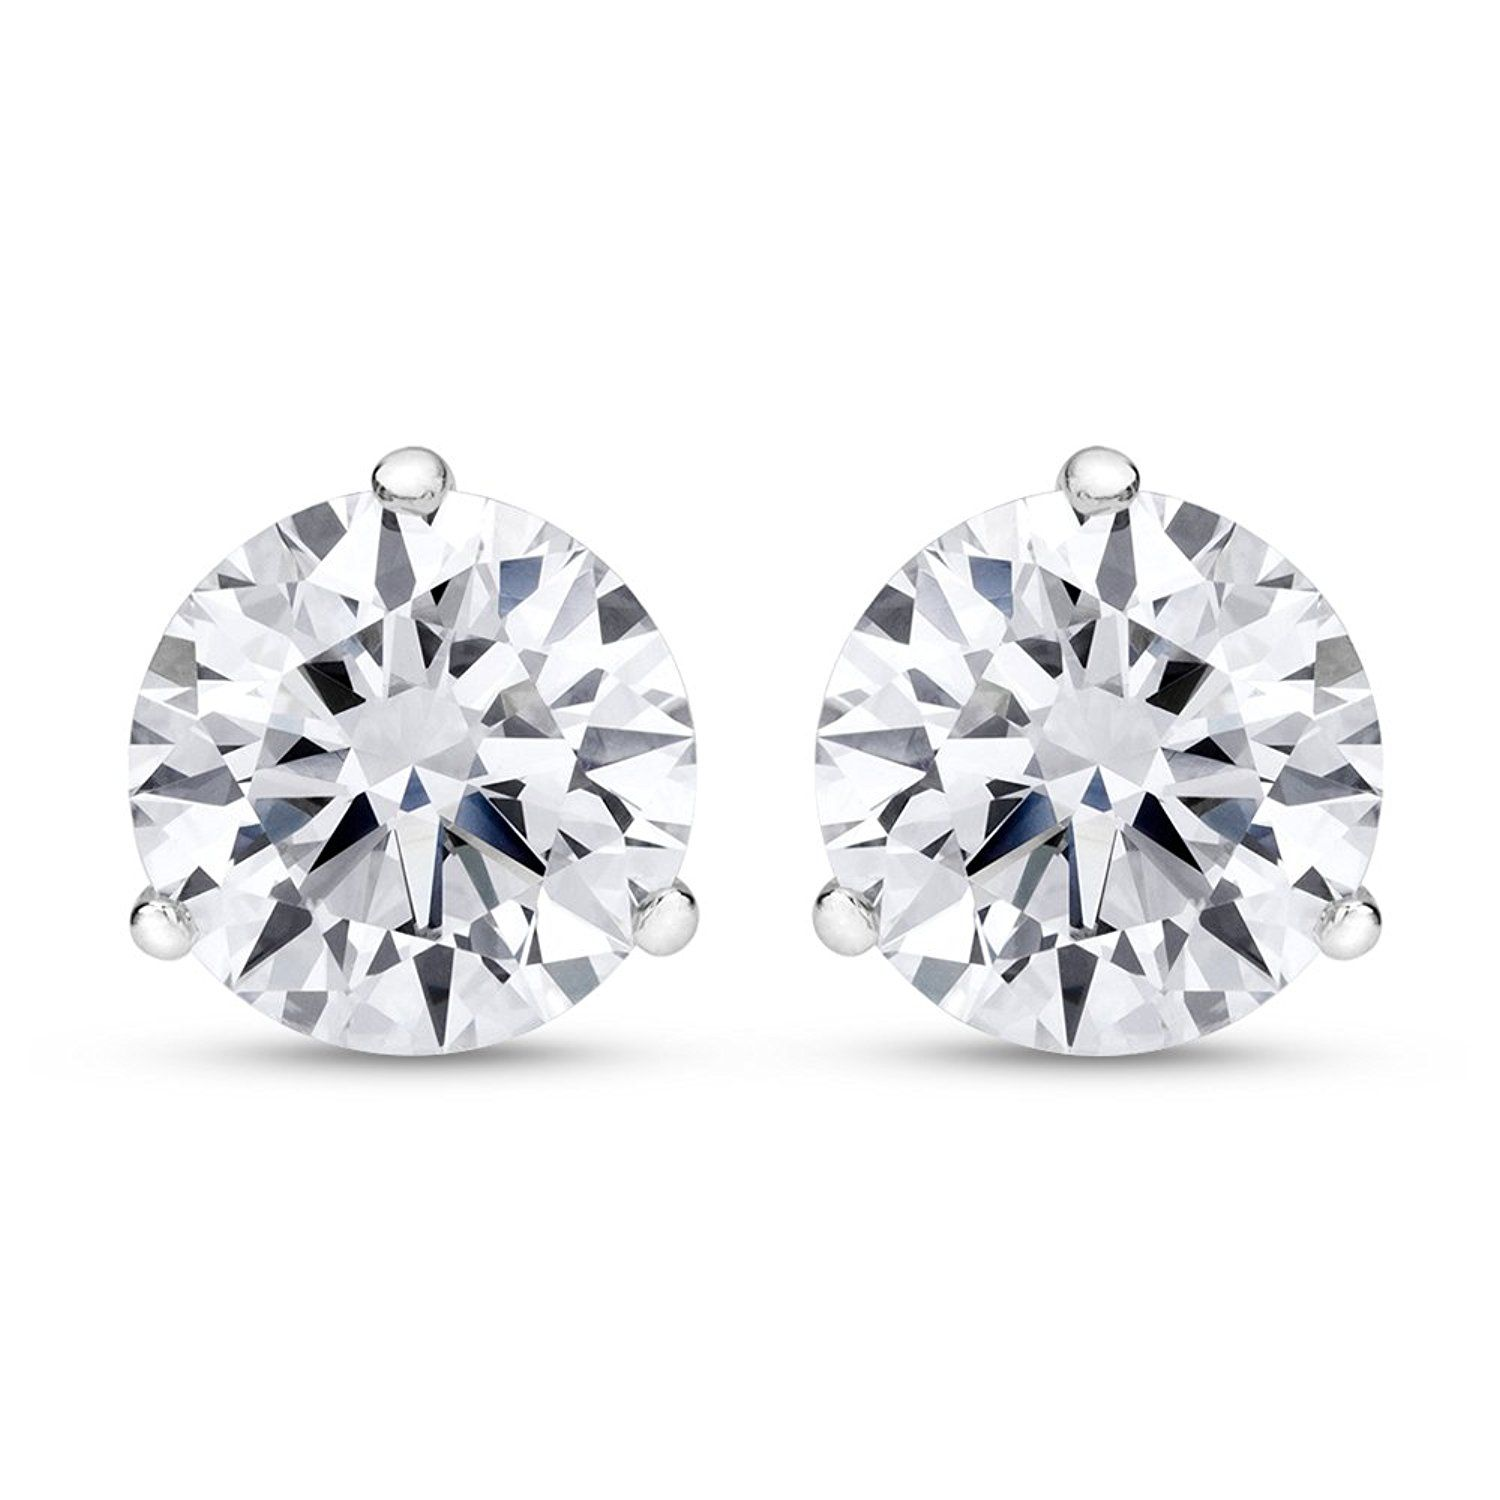 platinum watch stud earrings round shape prong diamond brilliant screw back